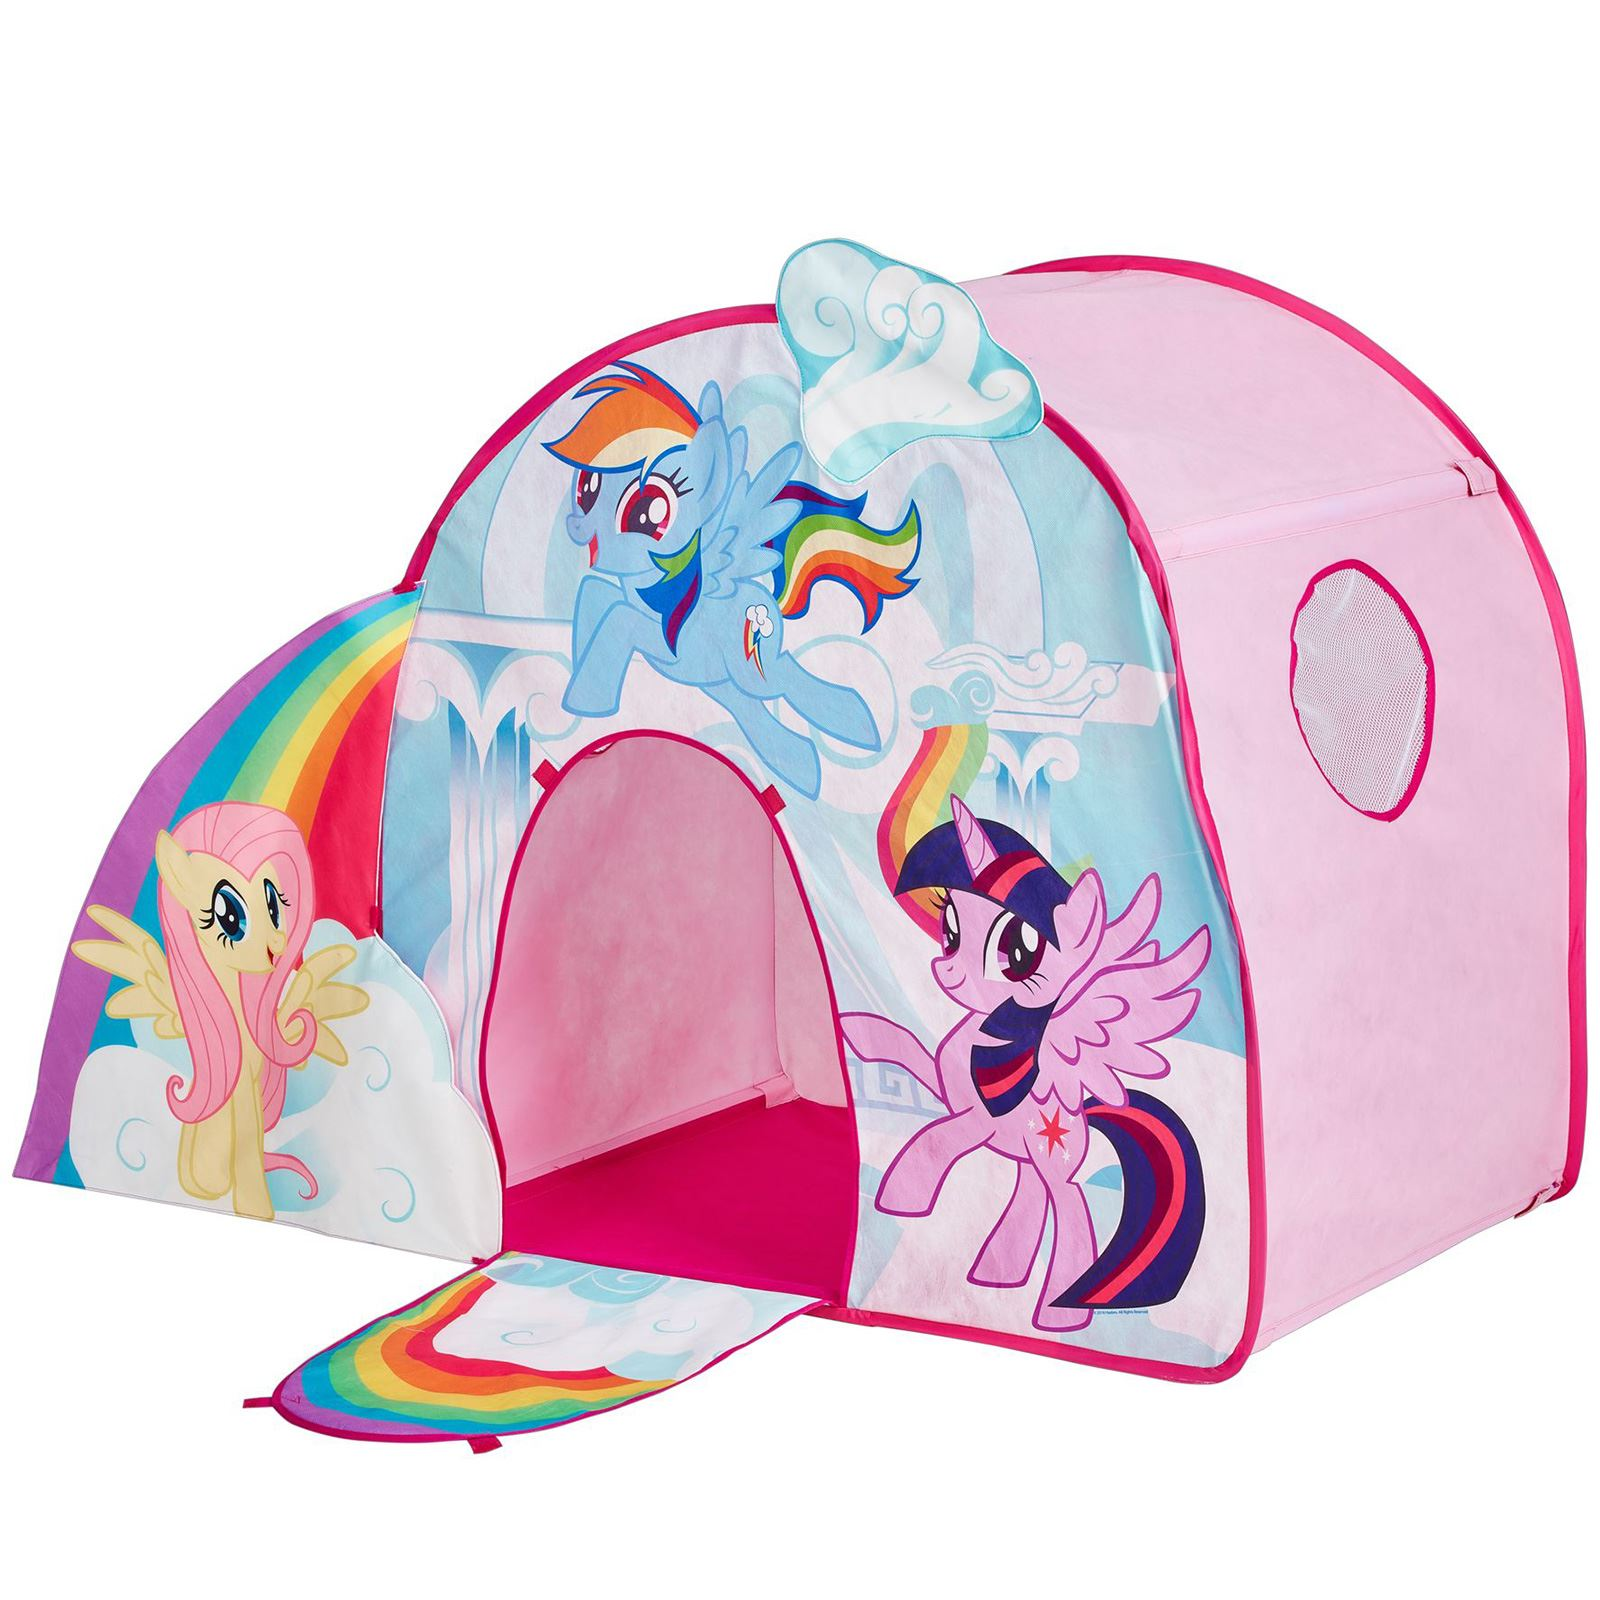 POP-UP-PLAY-TENTS-FEATURE-KIDS-DISNEY-PRINCESS-  sc 1 st  eBay : pop up play tent for kids - memphite.com